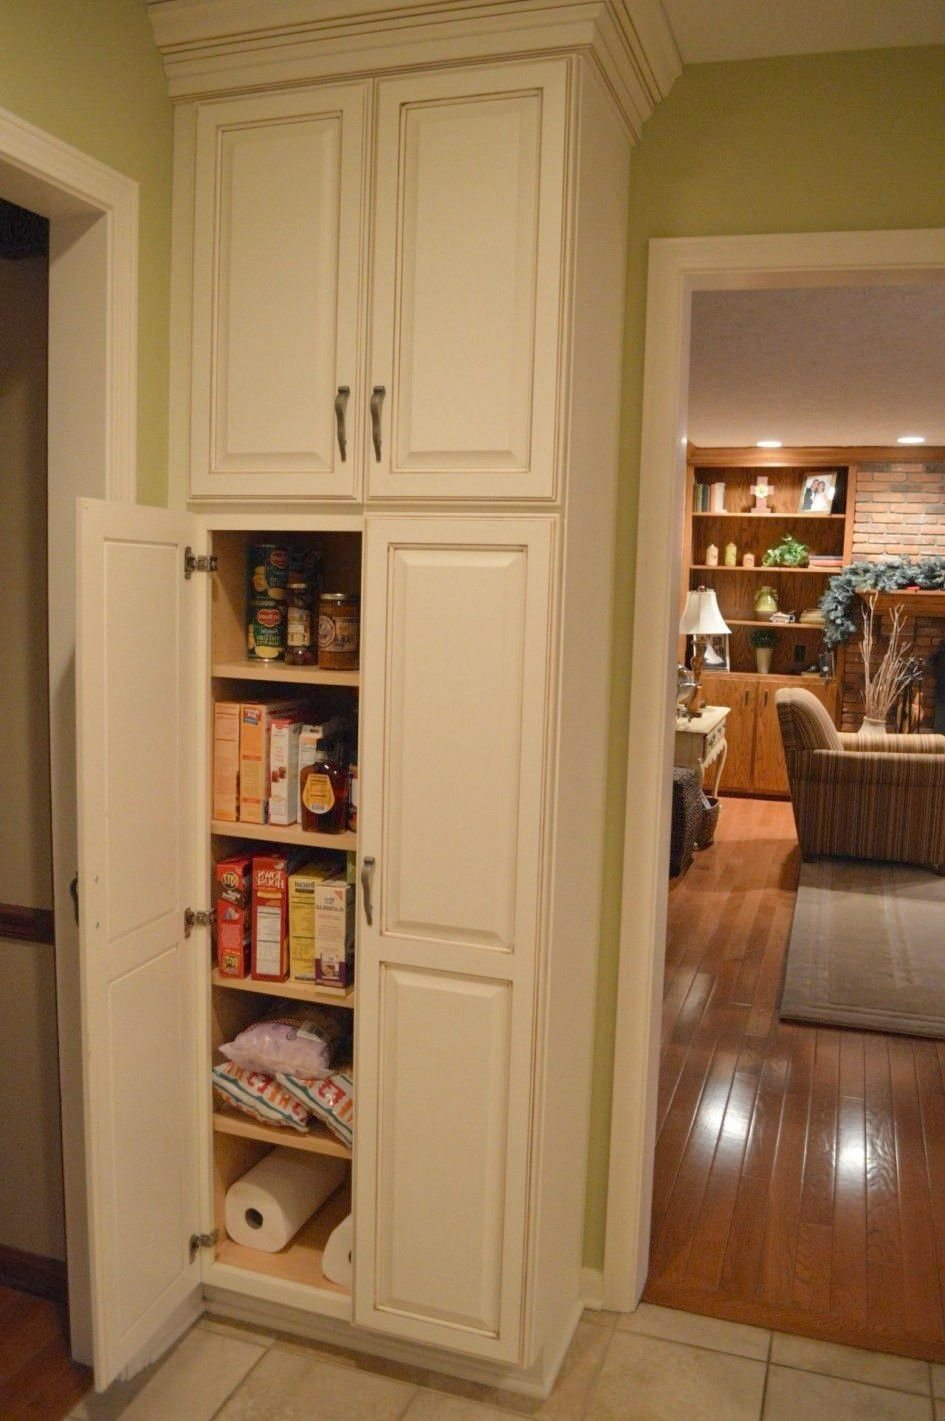 70 18 Inch Deep Pantry Cabinet Kitchen Island Countertop Ideas Check More At Htt Pantry Storage Cabinet Kitchen Pantry Storage Cabinet Corner Pantry Cabinet